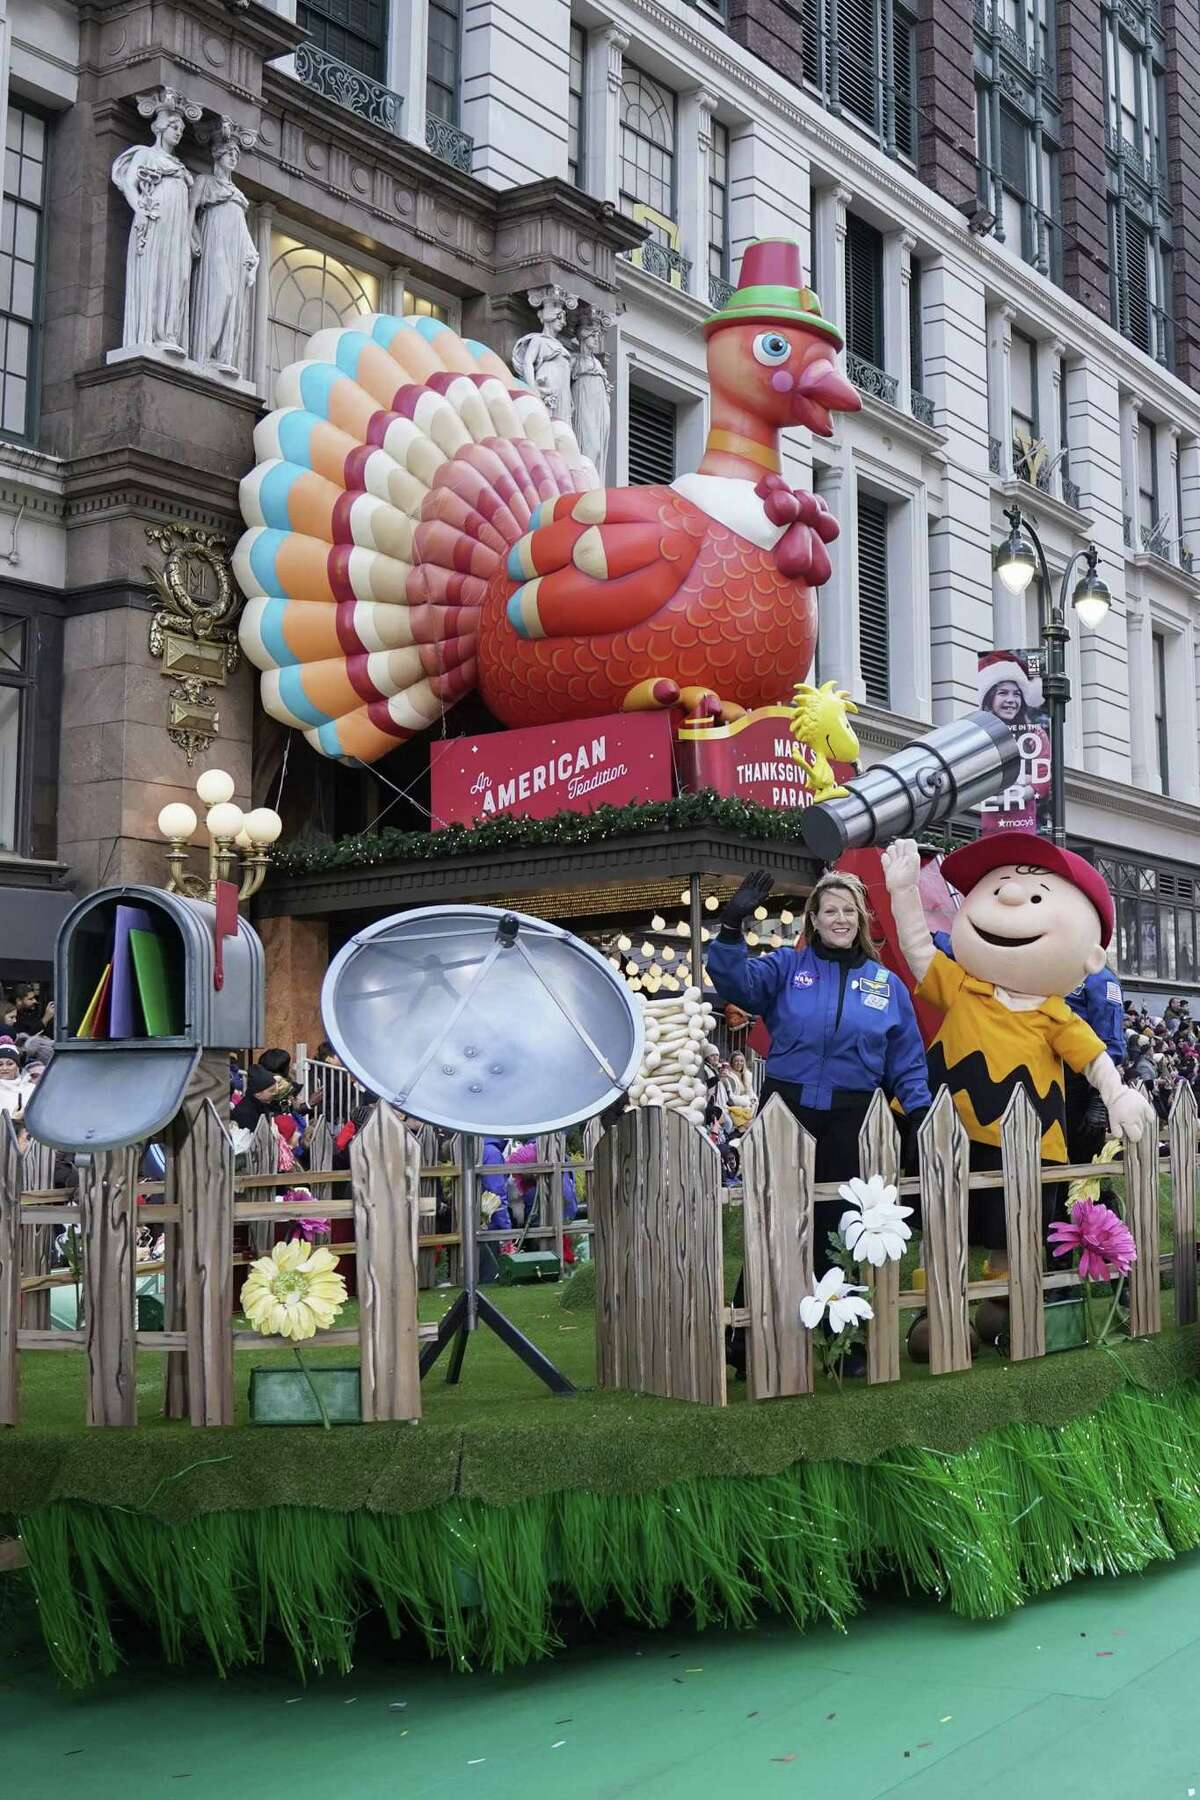 2) Watch the Macy's Thanksgiving Day Parade: Sure, it'll look different this year, but the show will go on. New York City Mayor Bill de Blasio confirmed that the Macy's Thanksgiving Day Parade will be held virtually without a crowd.